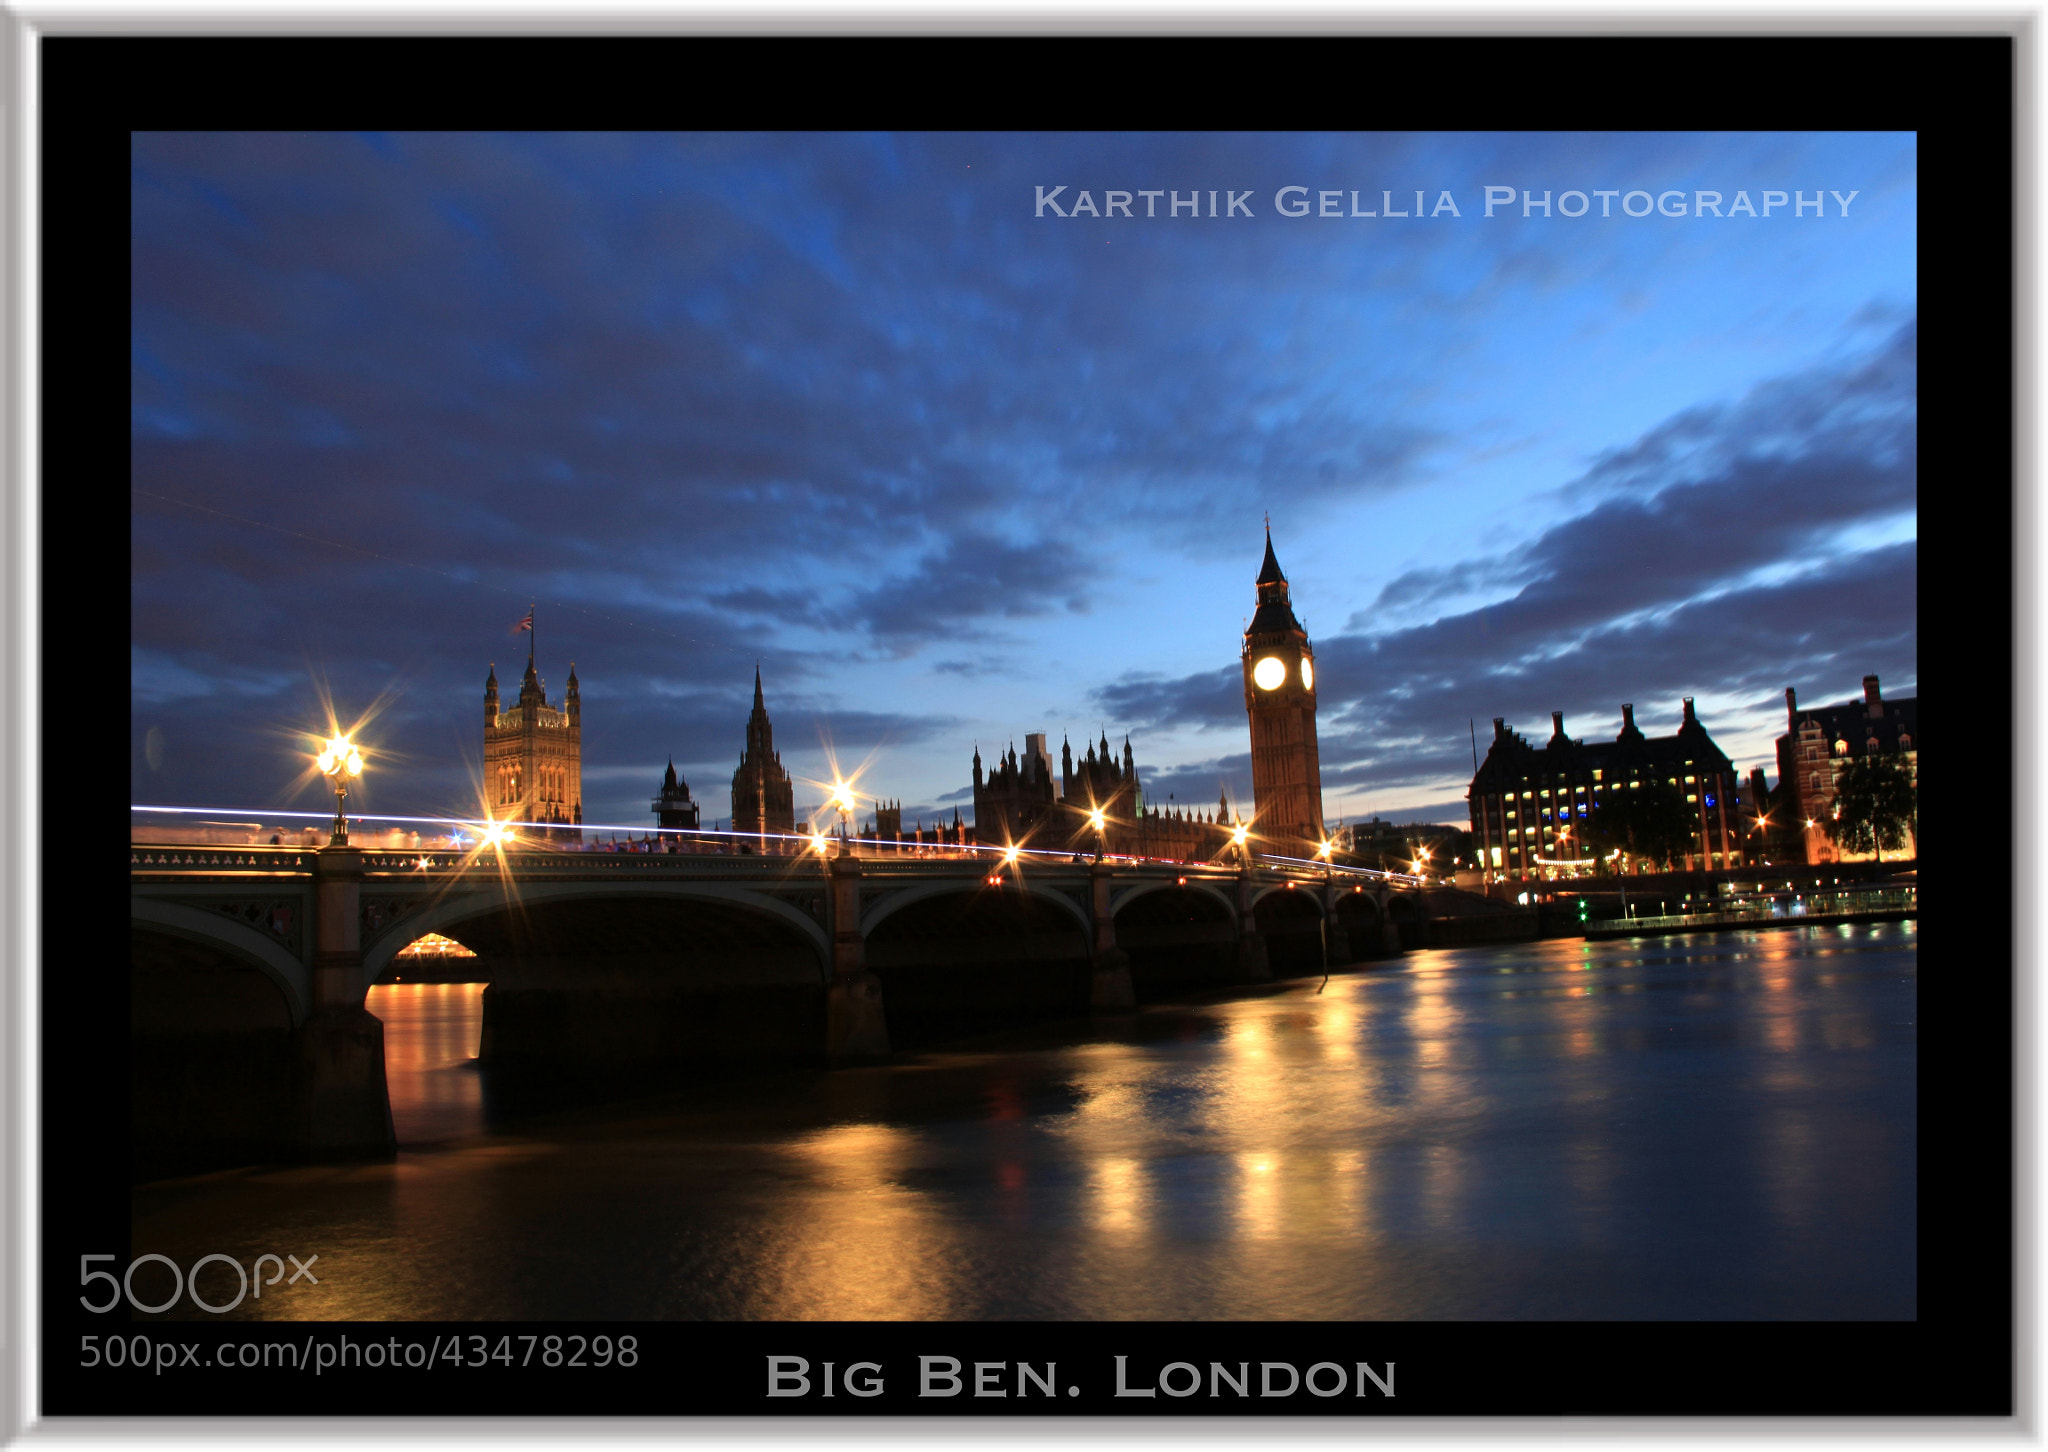 Photograph Big Ben, London by Karthik Gellia on 500px